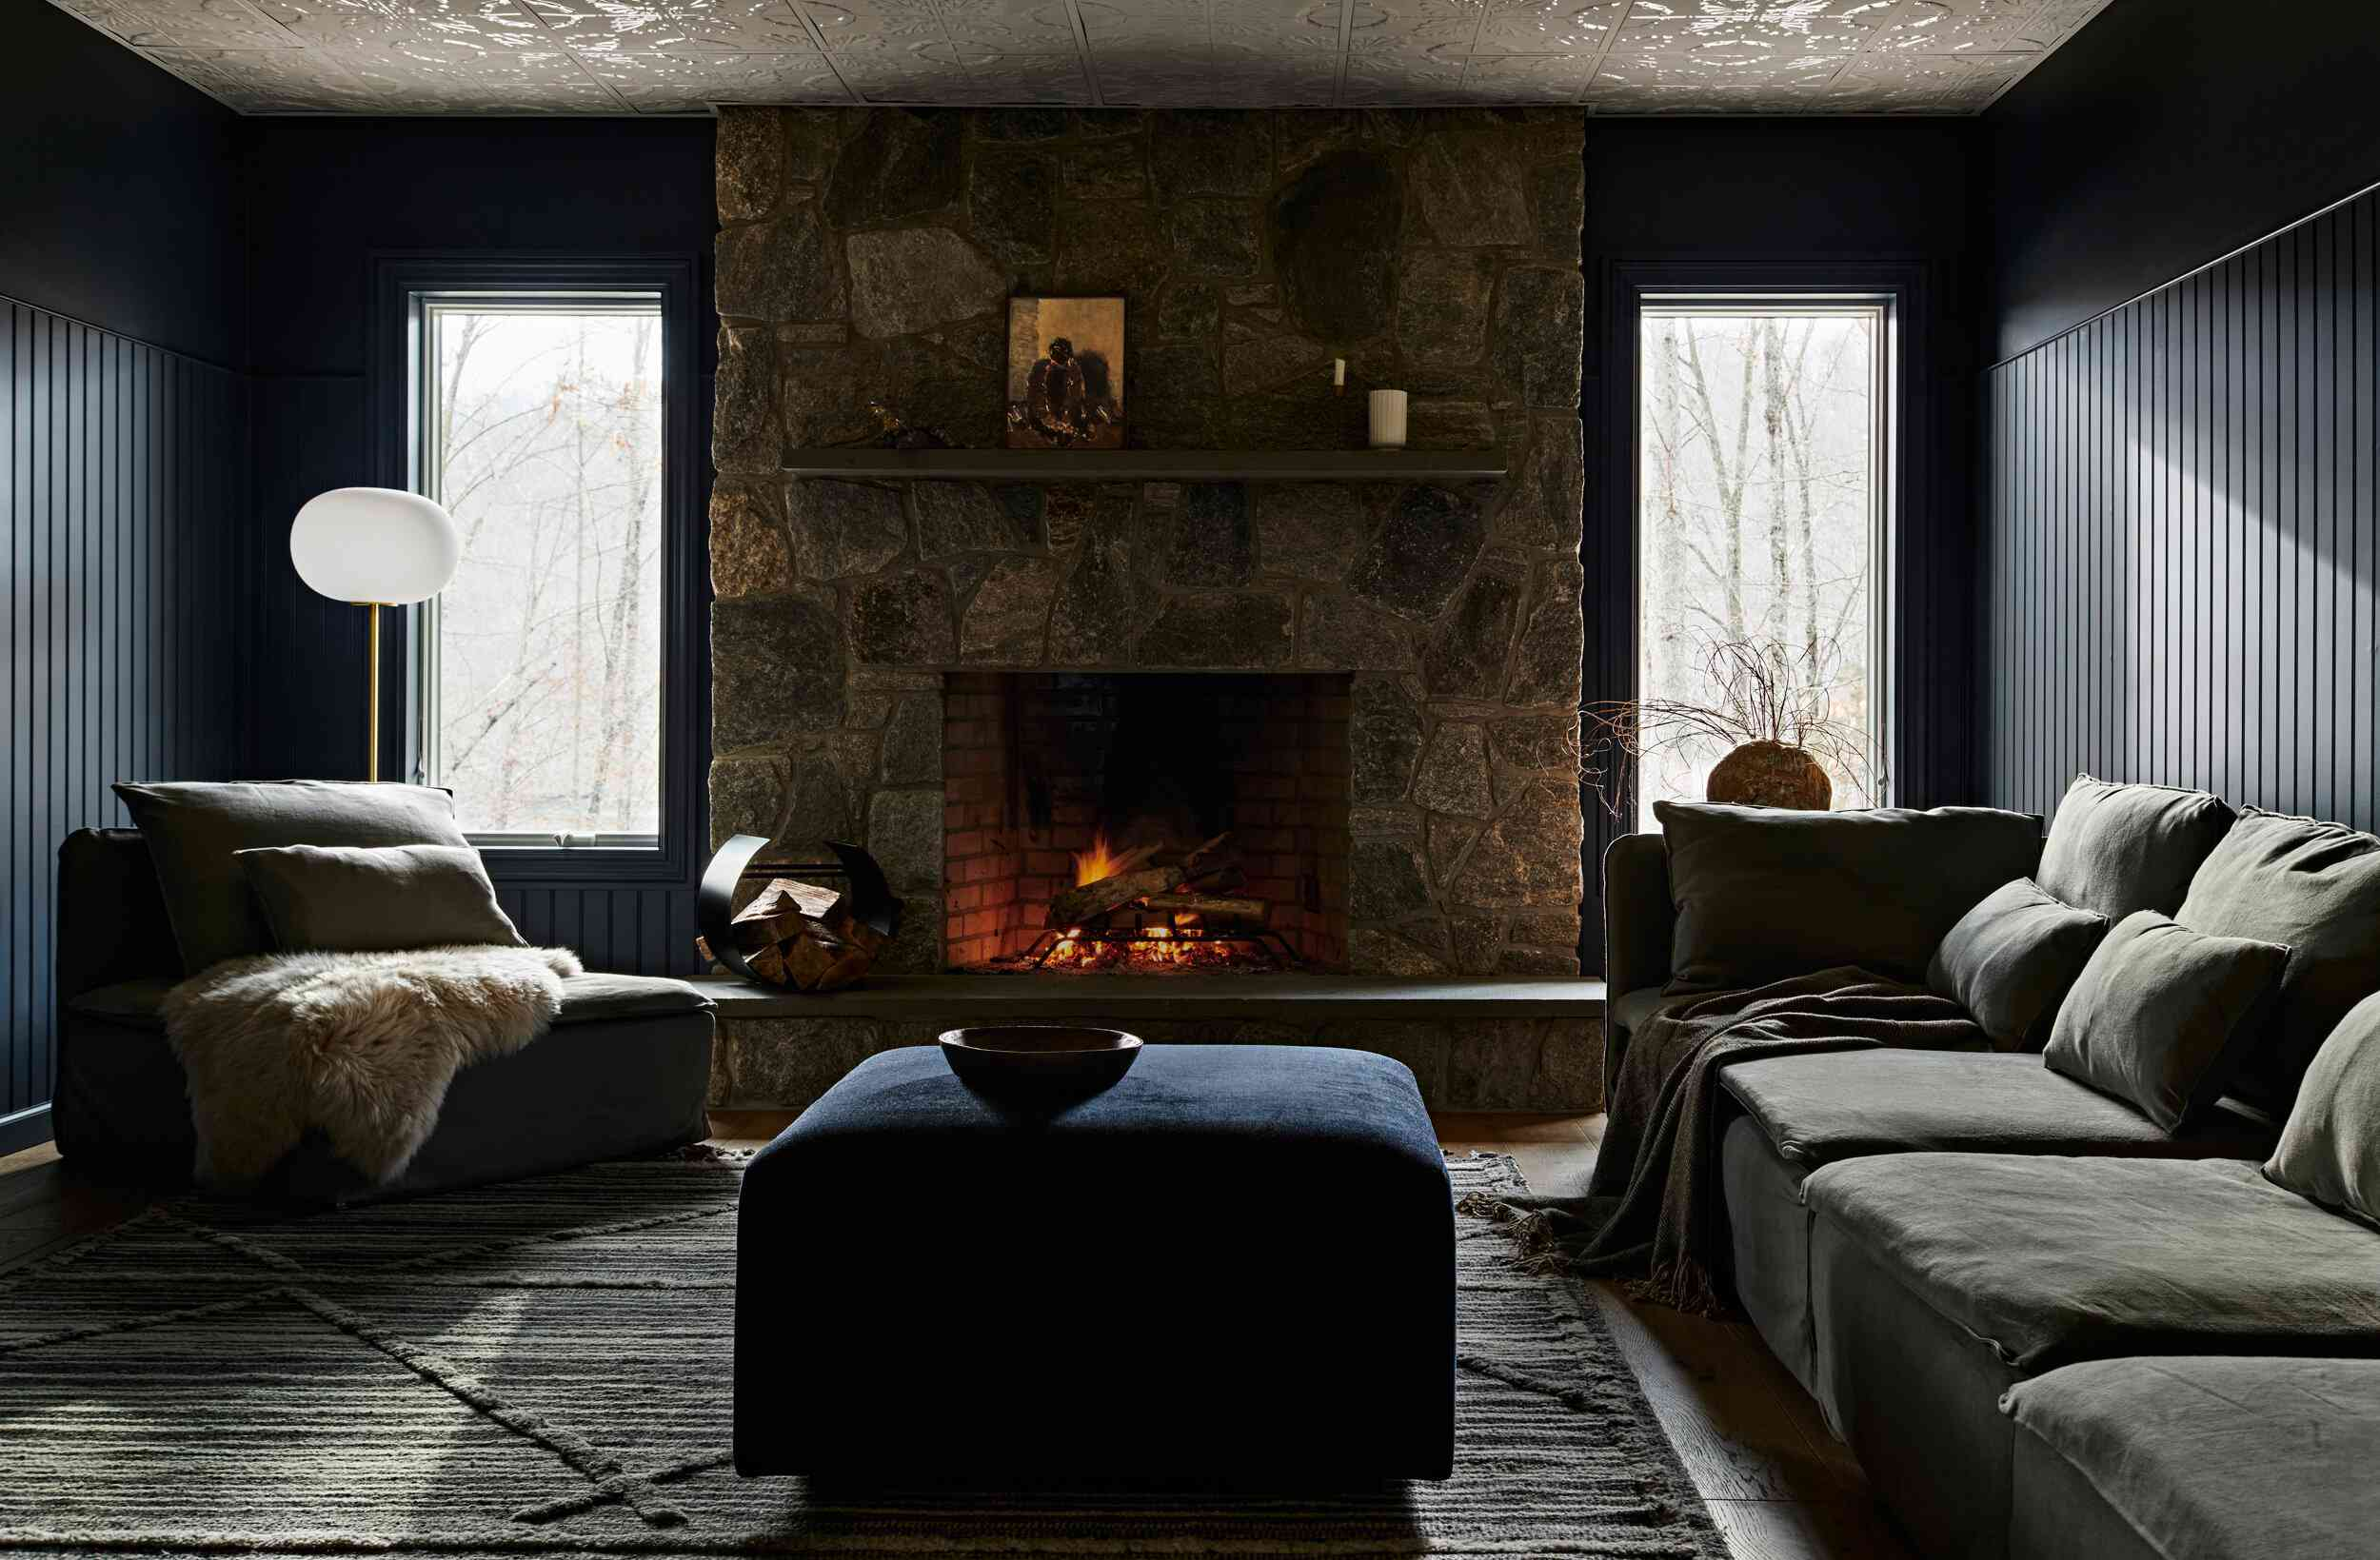 Rustic and cozy living room with natural stone fireplace